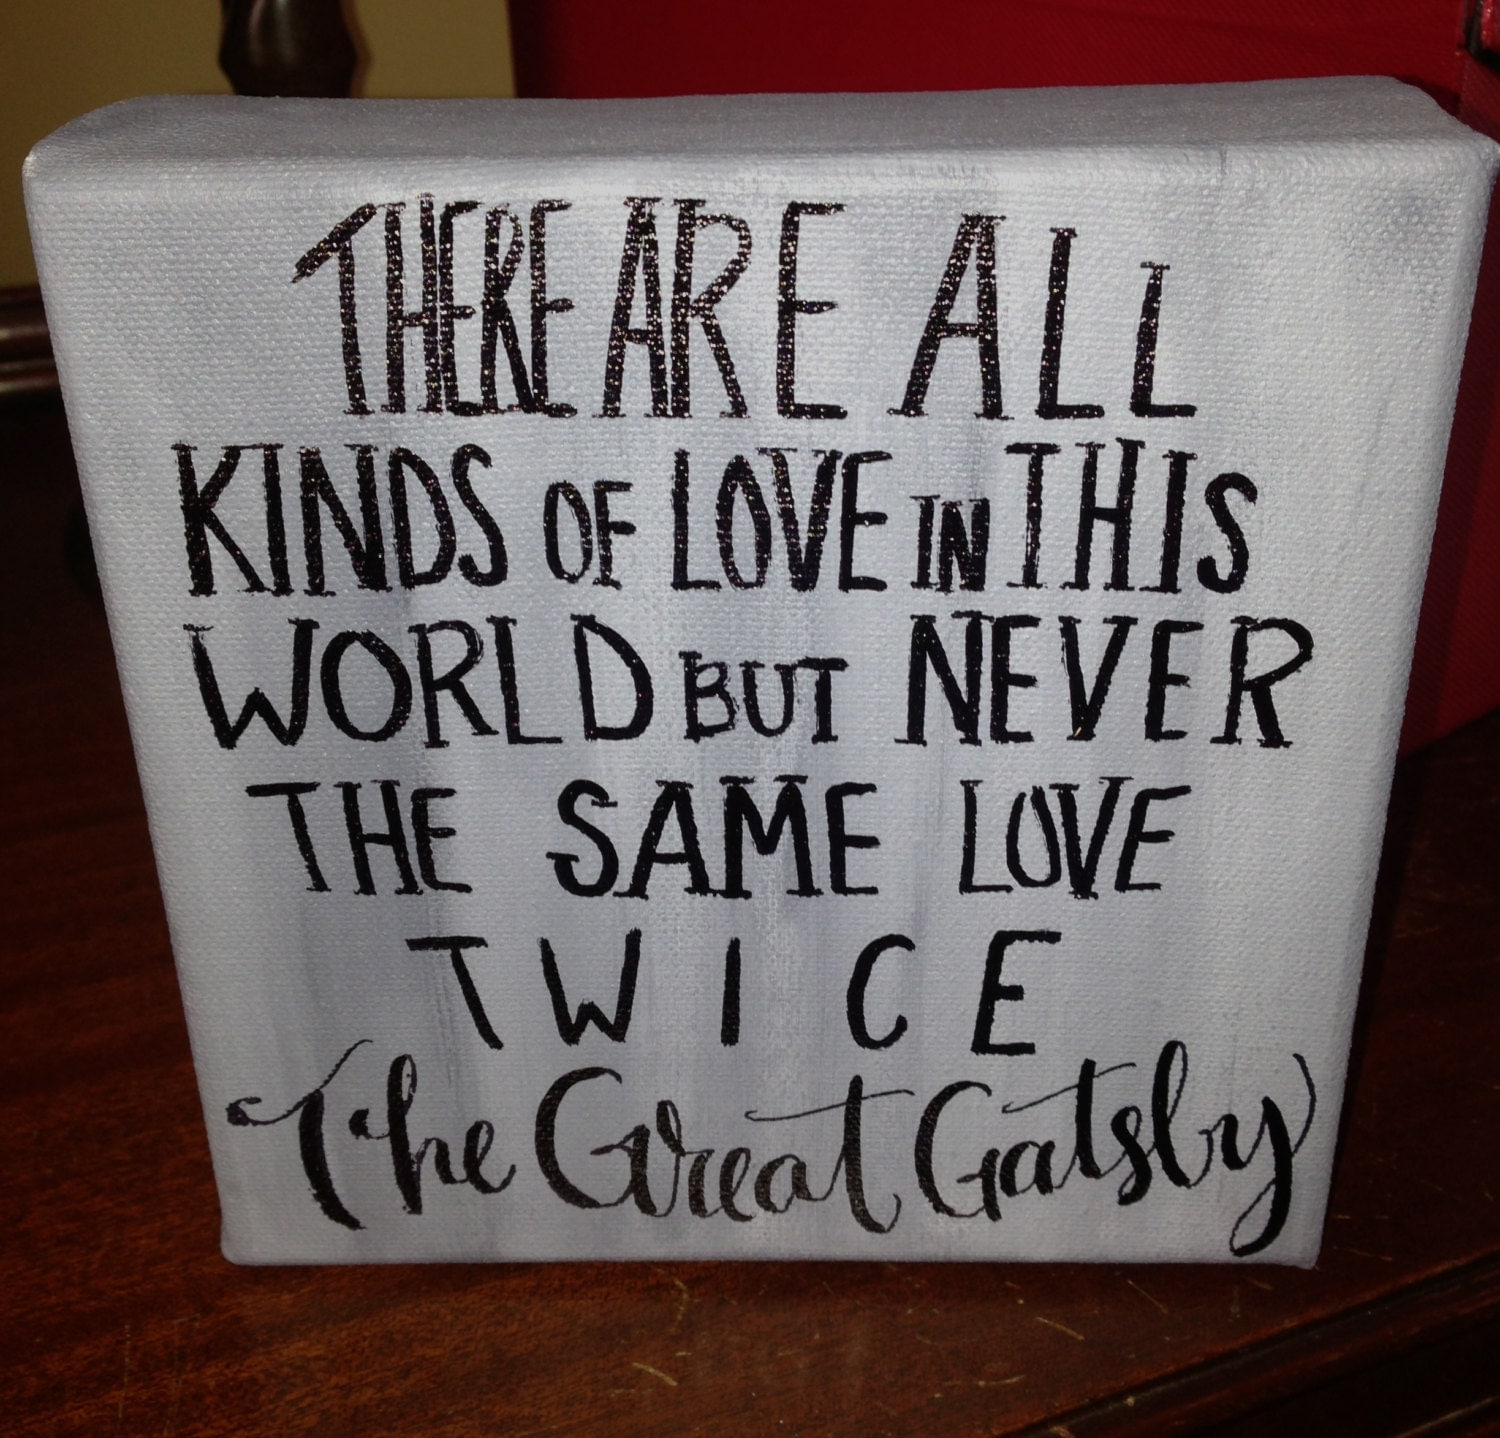 The Great Gatsby: The Great Gatsby Quote On 6 X 6 Inch Canvas By InkandPenShop